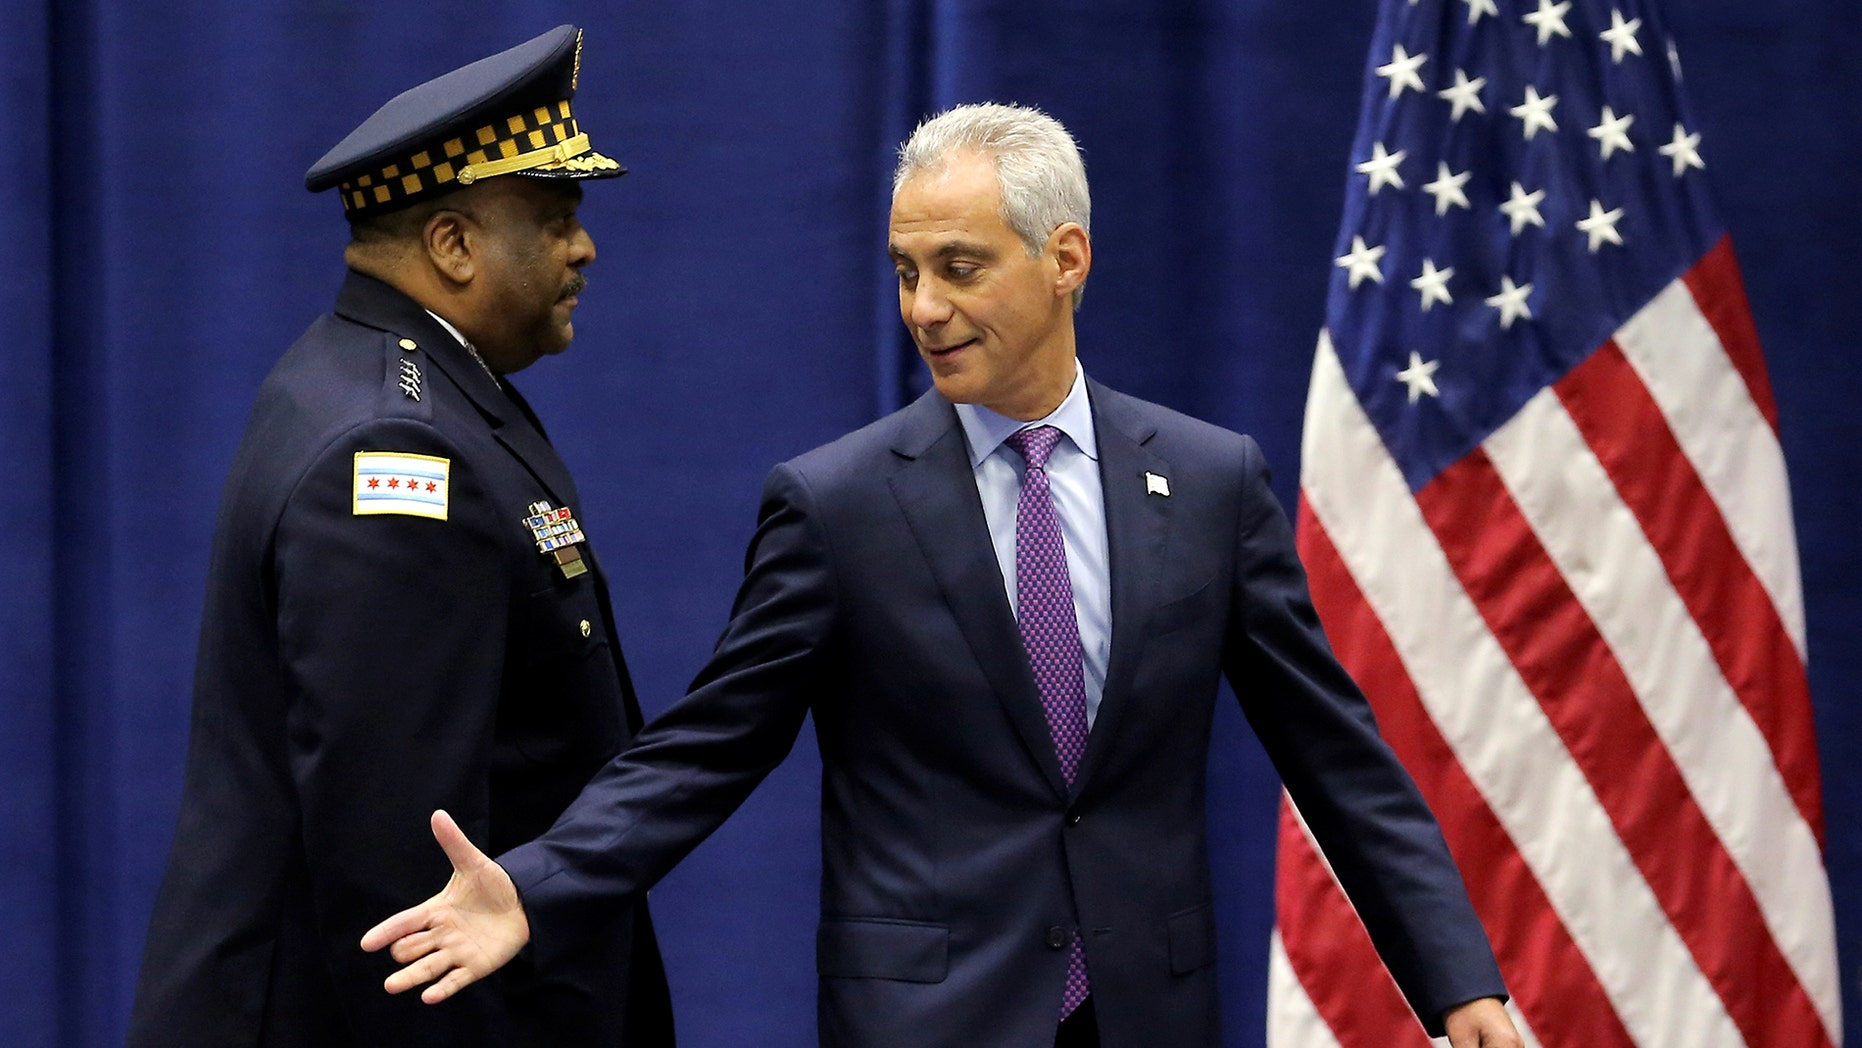 Chicago Mayor Rahm Emanuel and Police Superintendent Eddie Johnson in 2016. Police said 'some progress' has been made in the city's crime fight.